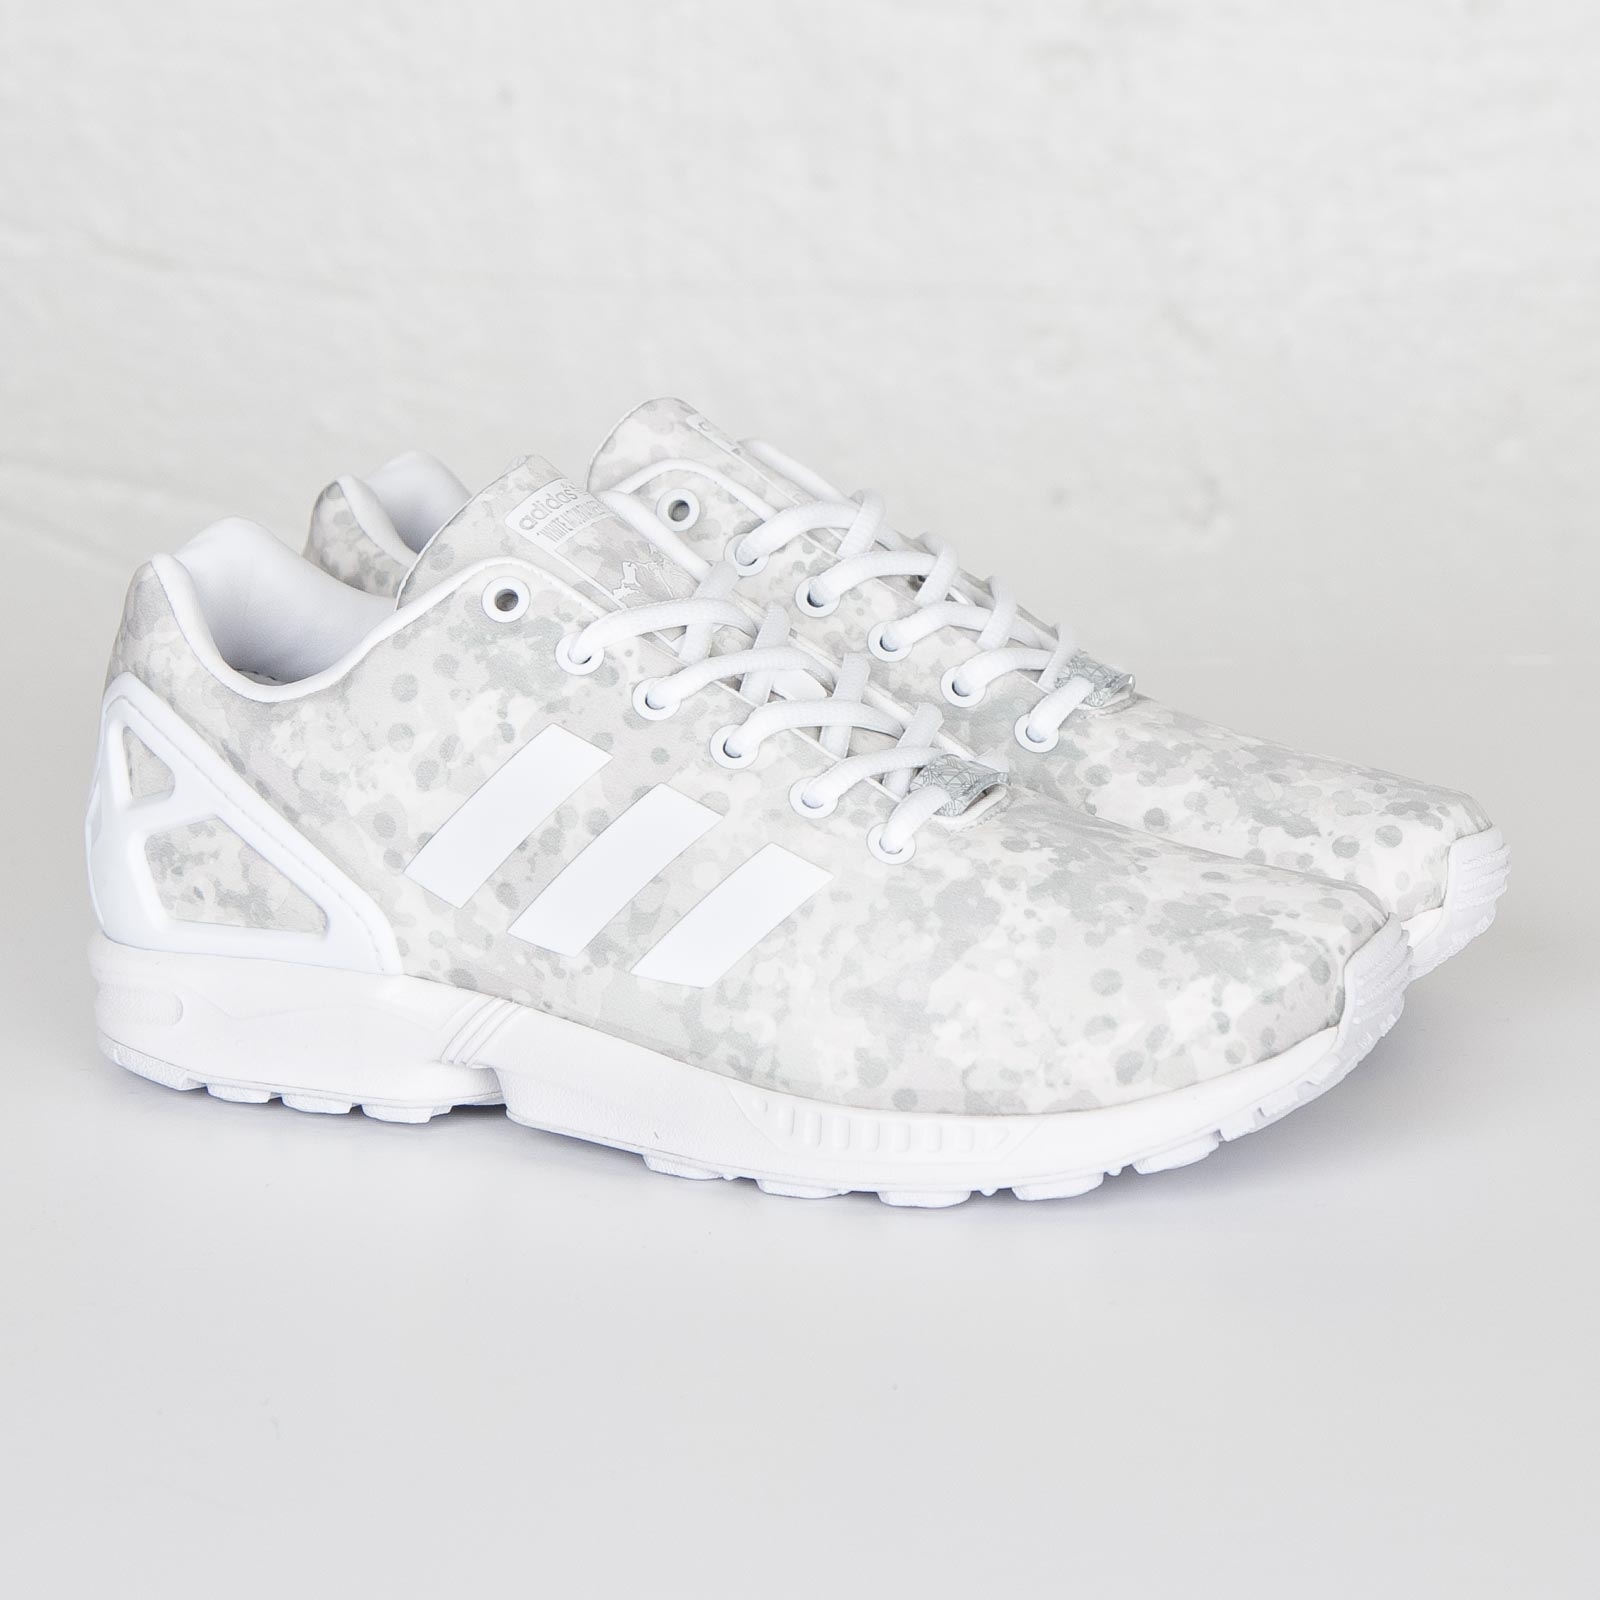 a86f9f69fe5e9 adidas ZX Flux White Mountaineering - Af6229 - Sneakersnstuff ...